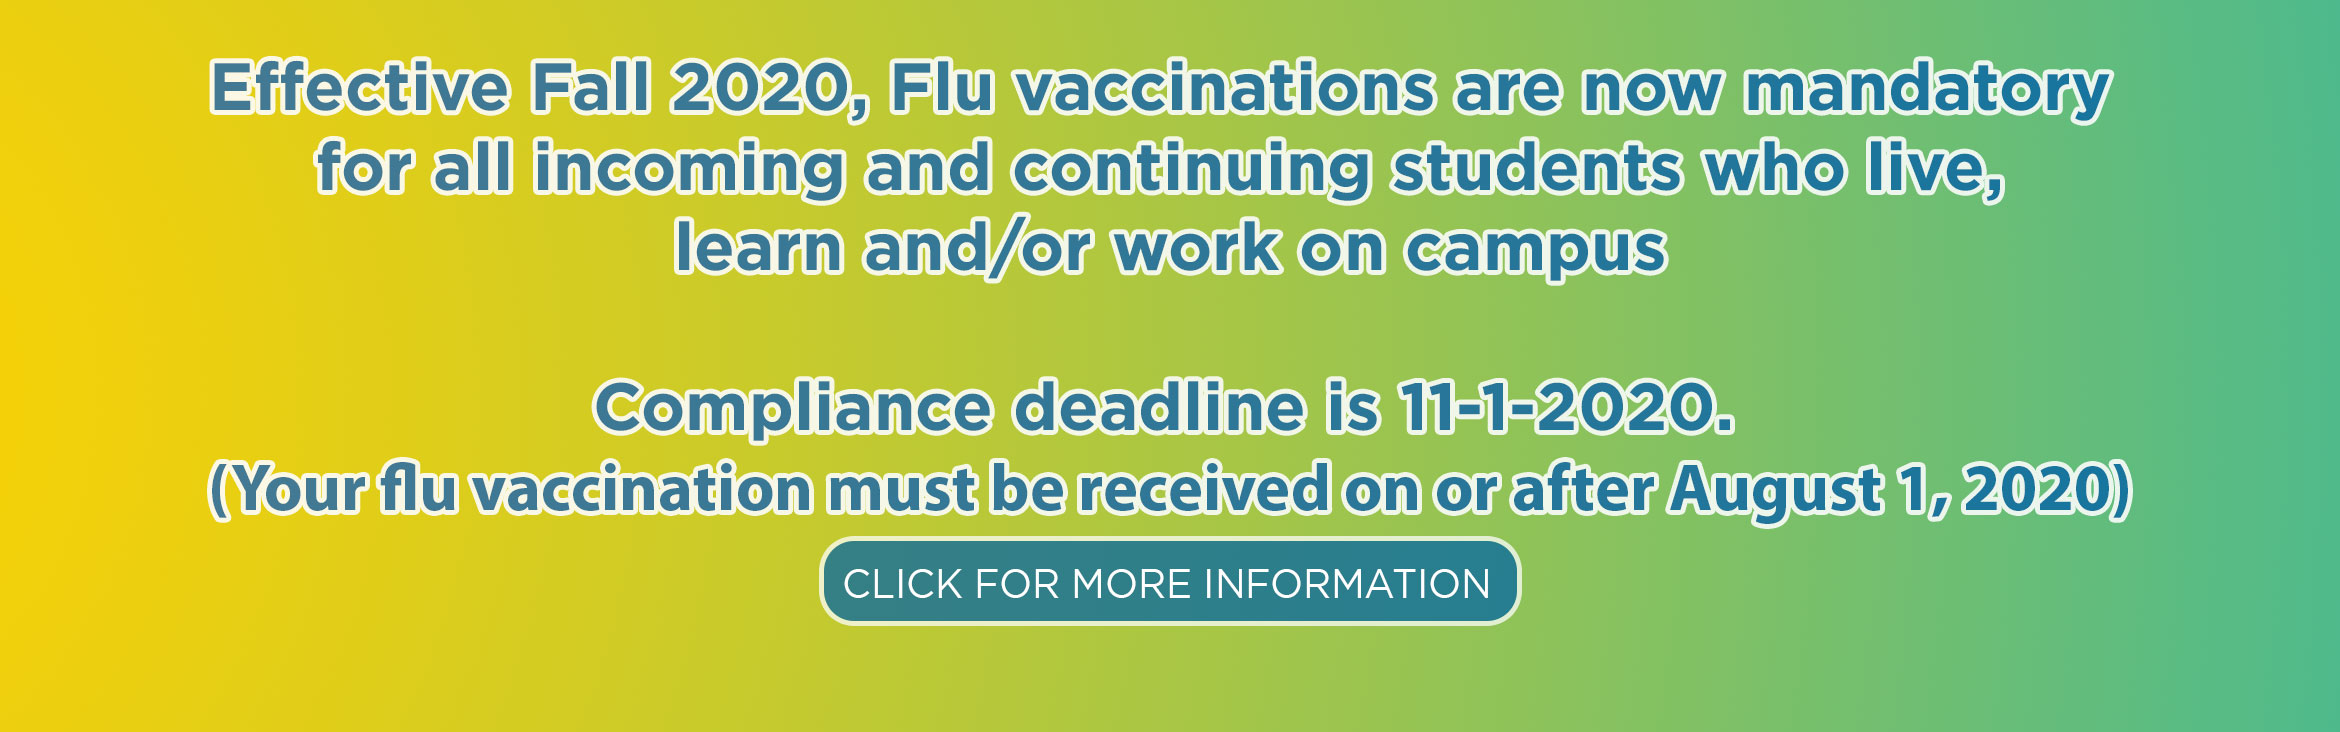 Effective Fall 2020, Flu vaccinations are now mandatory  for all incoming and continuing students who live,  learn and/or work on campus  Compliance deadline is 11-1-2020.  (Your flu vaccination must be received on or after August 1, 2020)